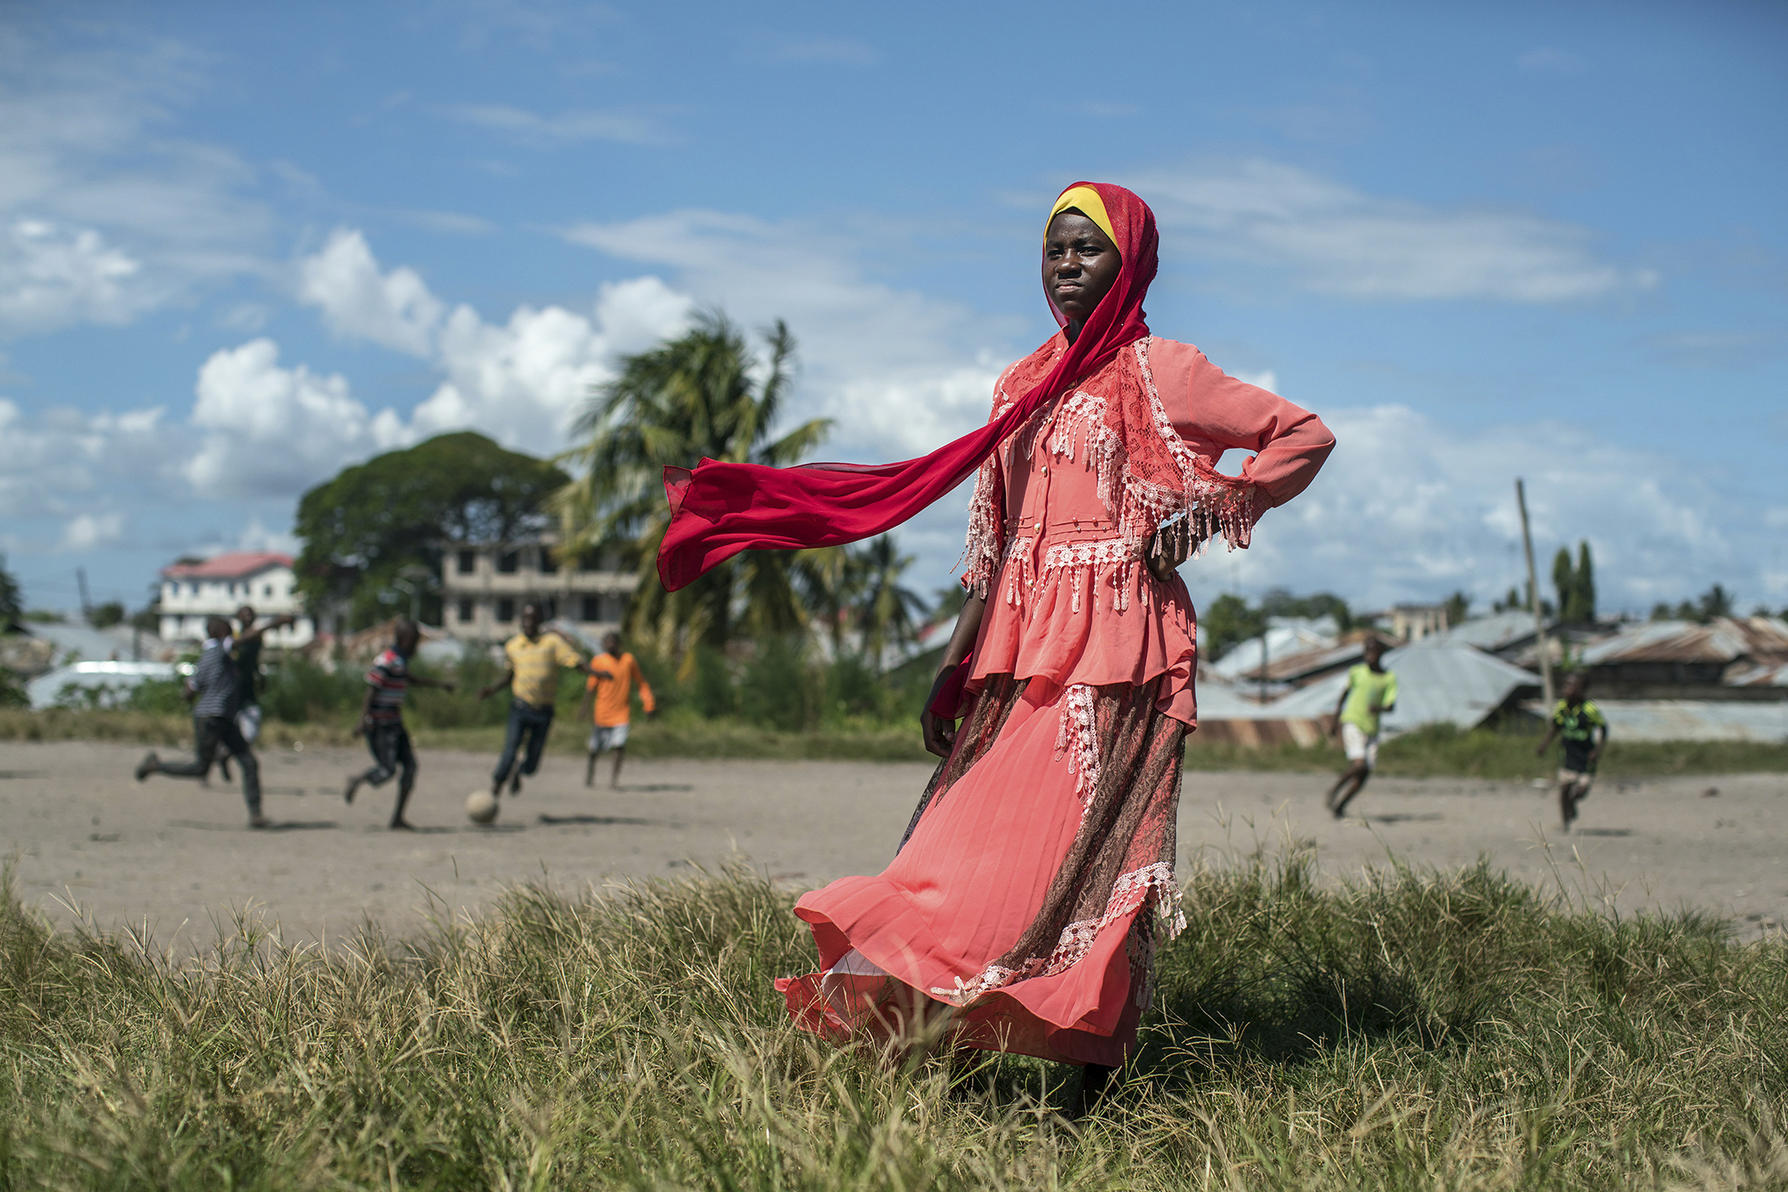 Farida Hamisi Kopnibo, 14, a soccer player on a club team in Zanzibar, by the makeshift pitch in the Meya neighborhood where she learned to play by joining pickup games with the boys